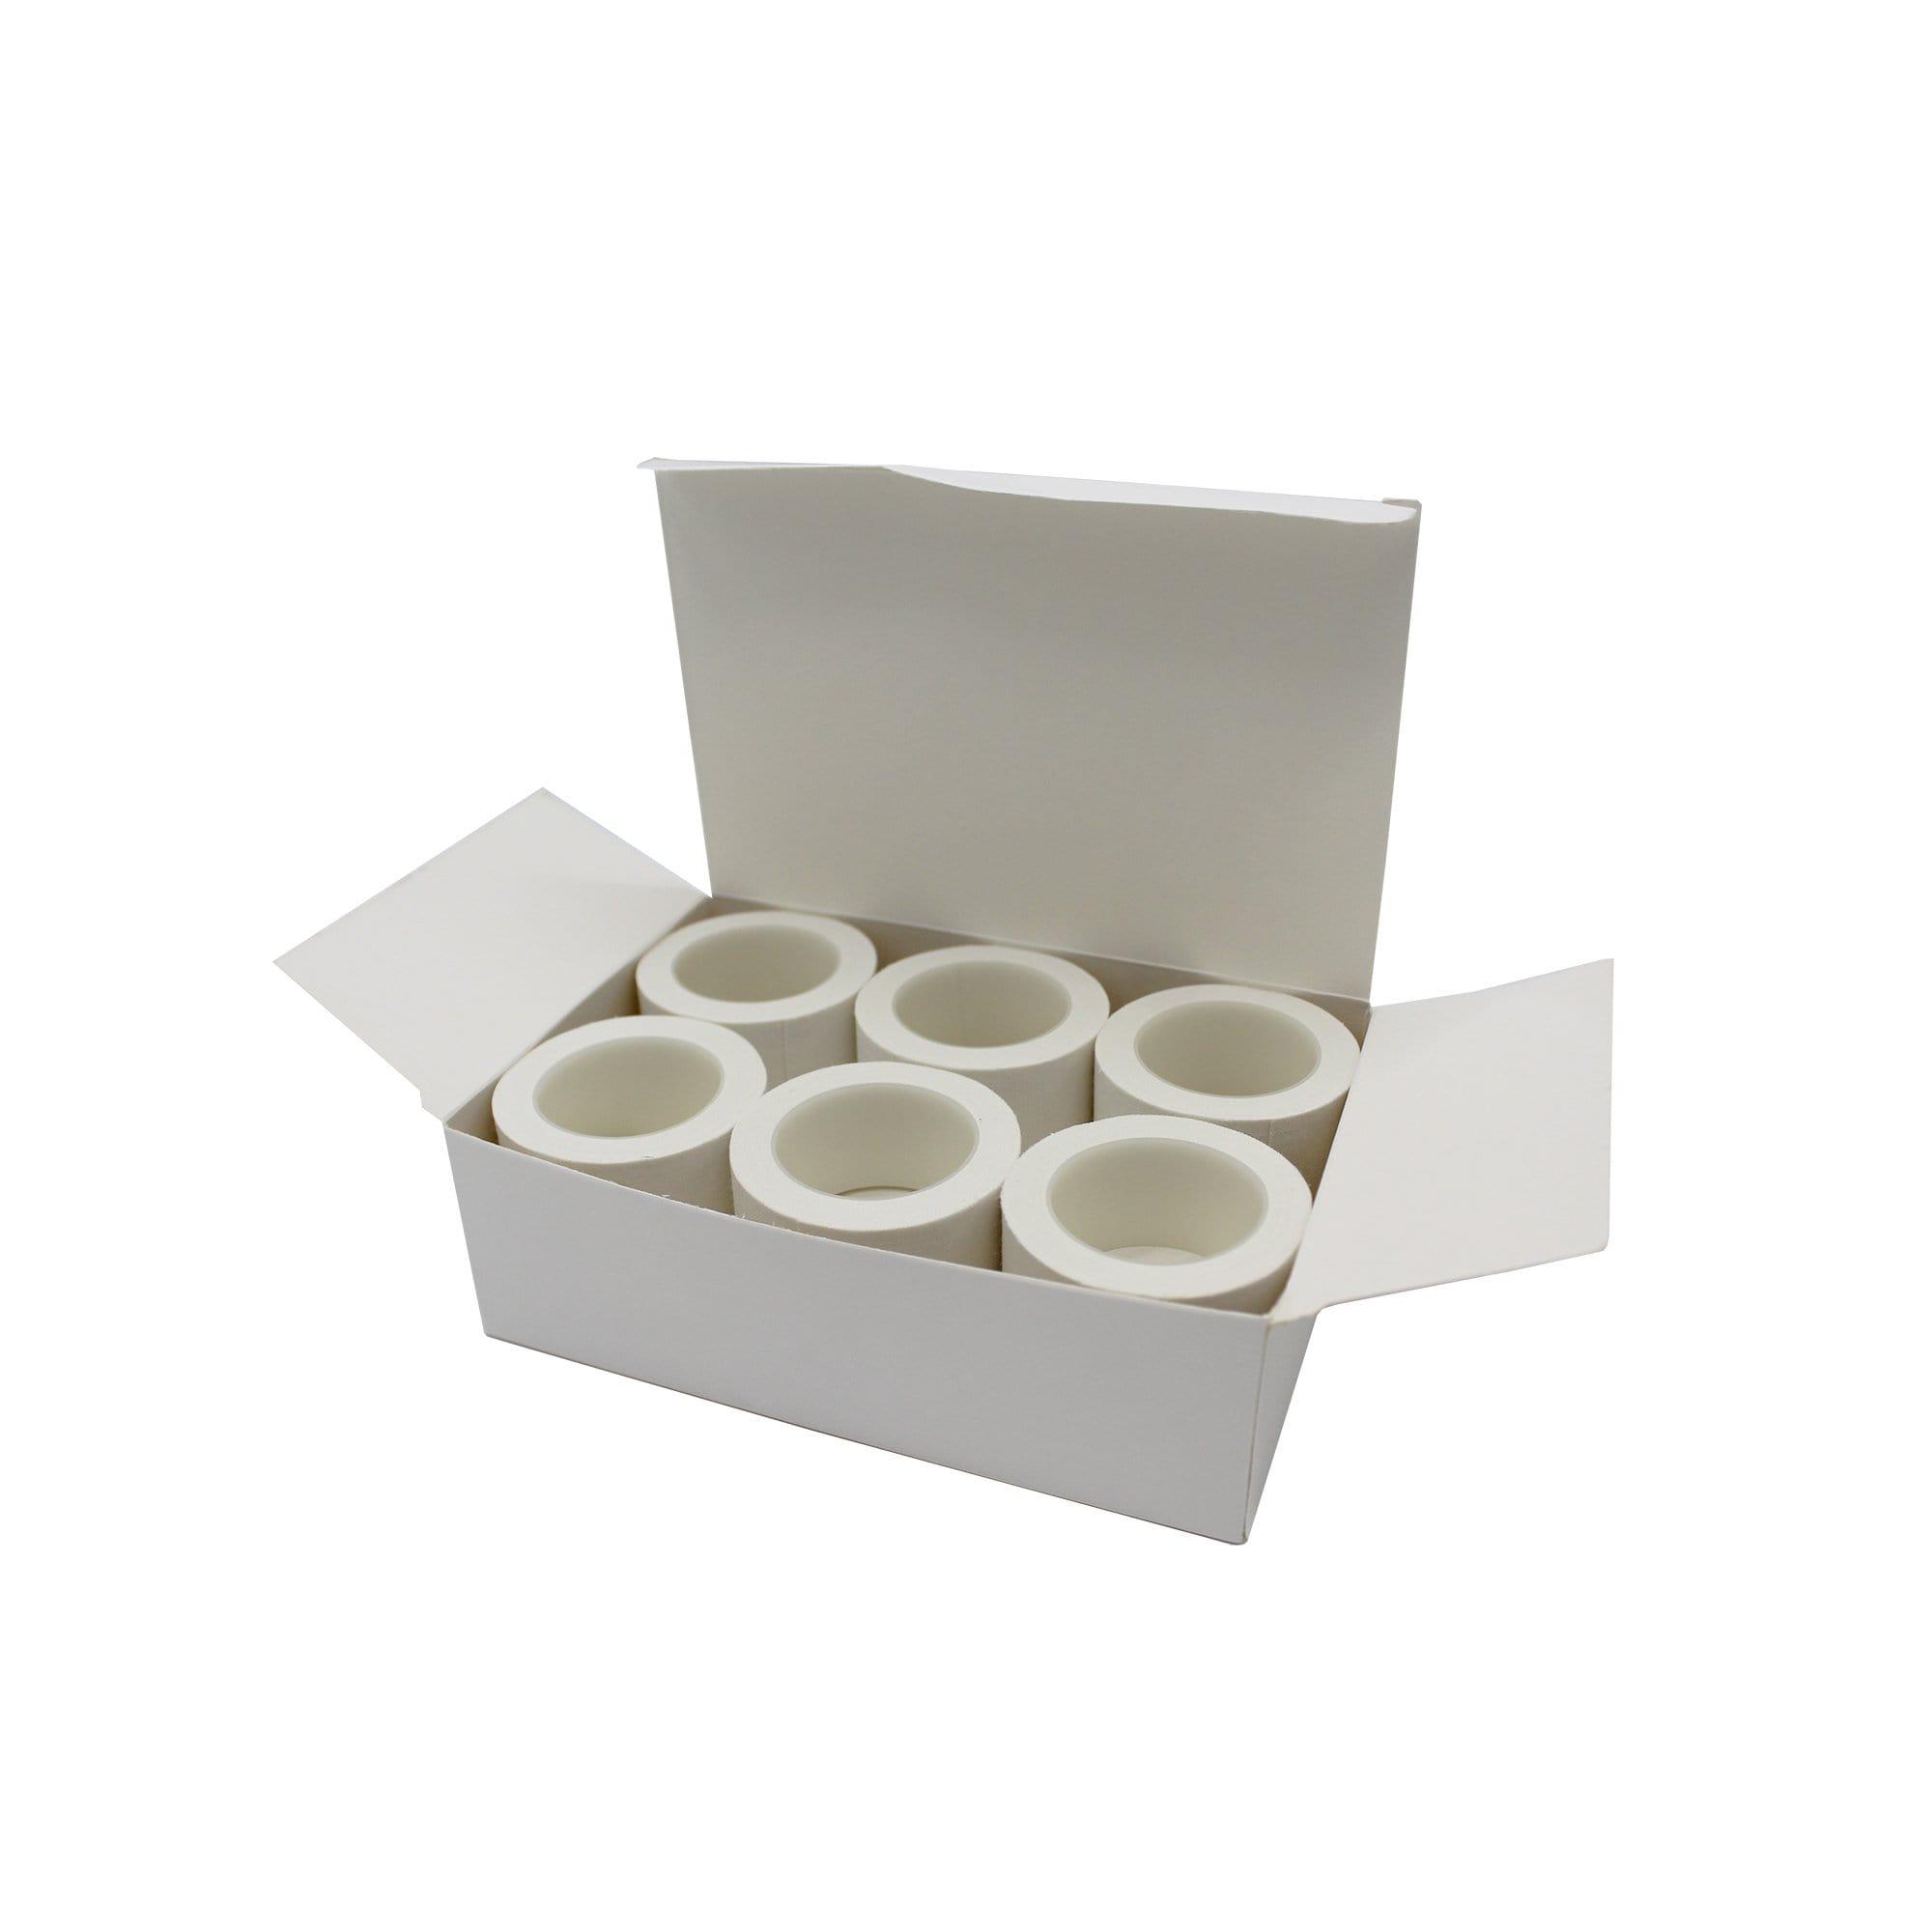 Adhesive Cotton Surgical Tape Roll 2.5cm x 4.5m - Ready First Aid - (Box of 12)